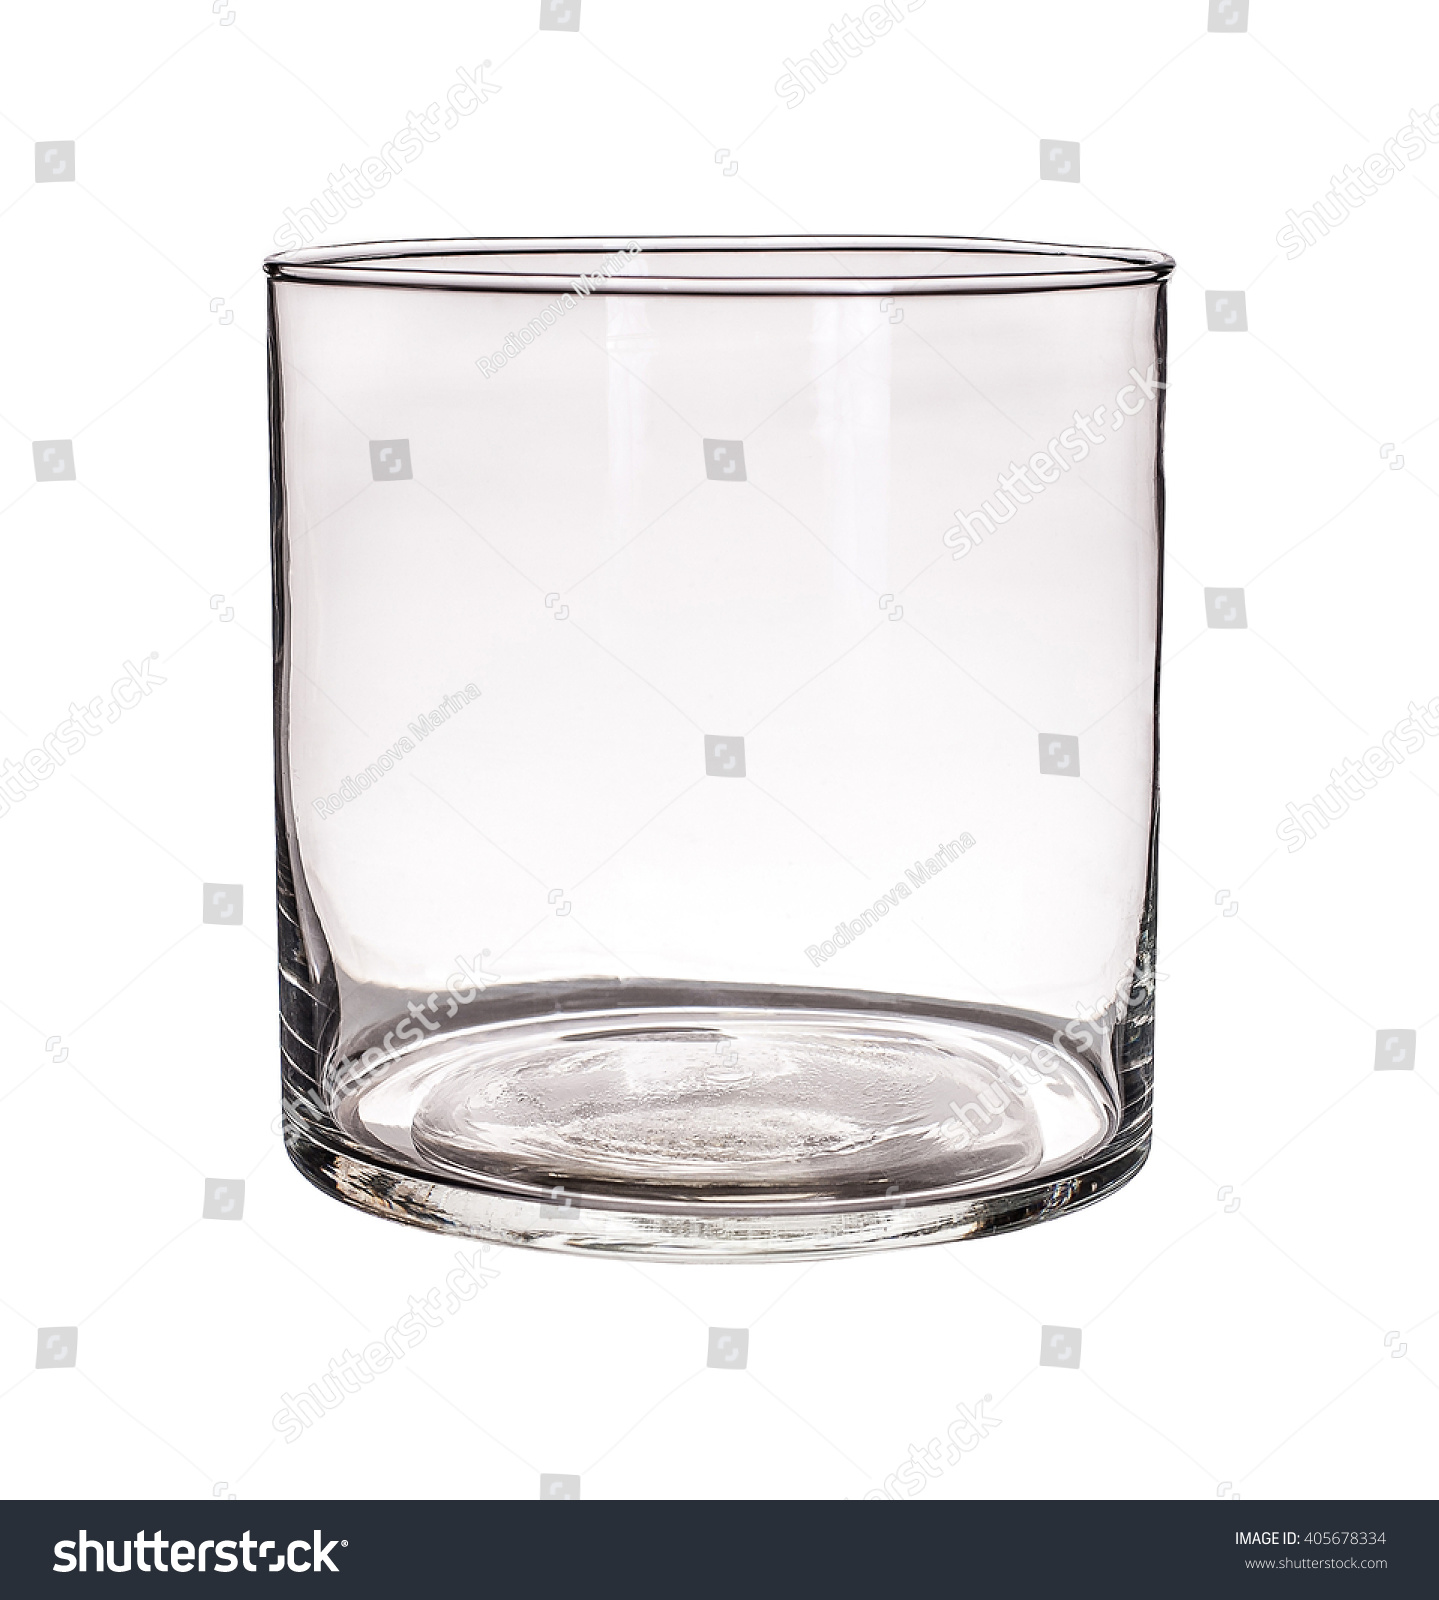 floor the sale cheap vase amazon clear wholesale vases for glass large com hobby lobby